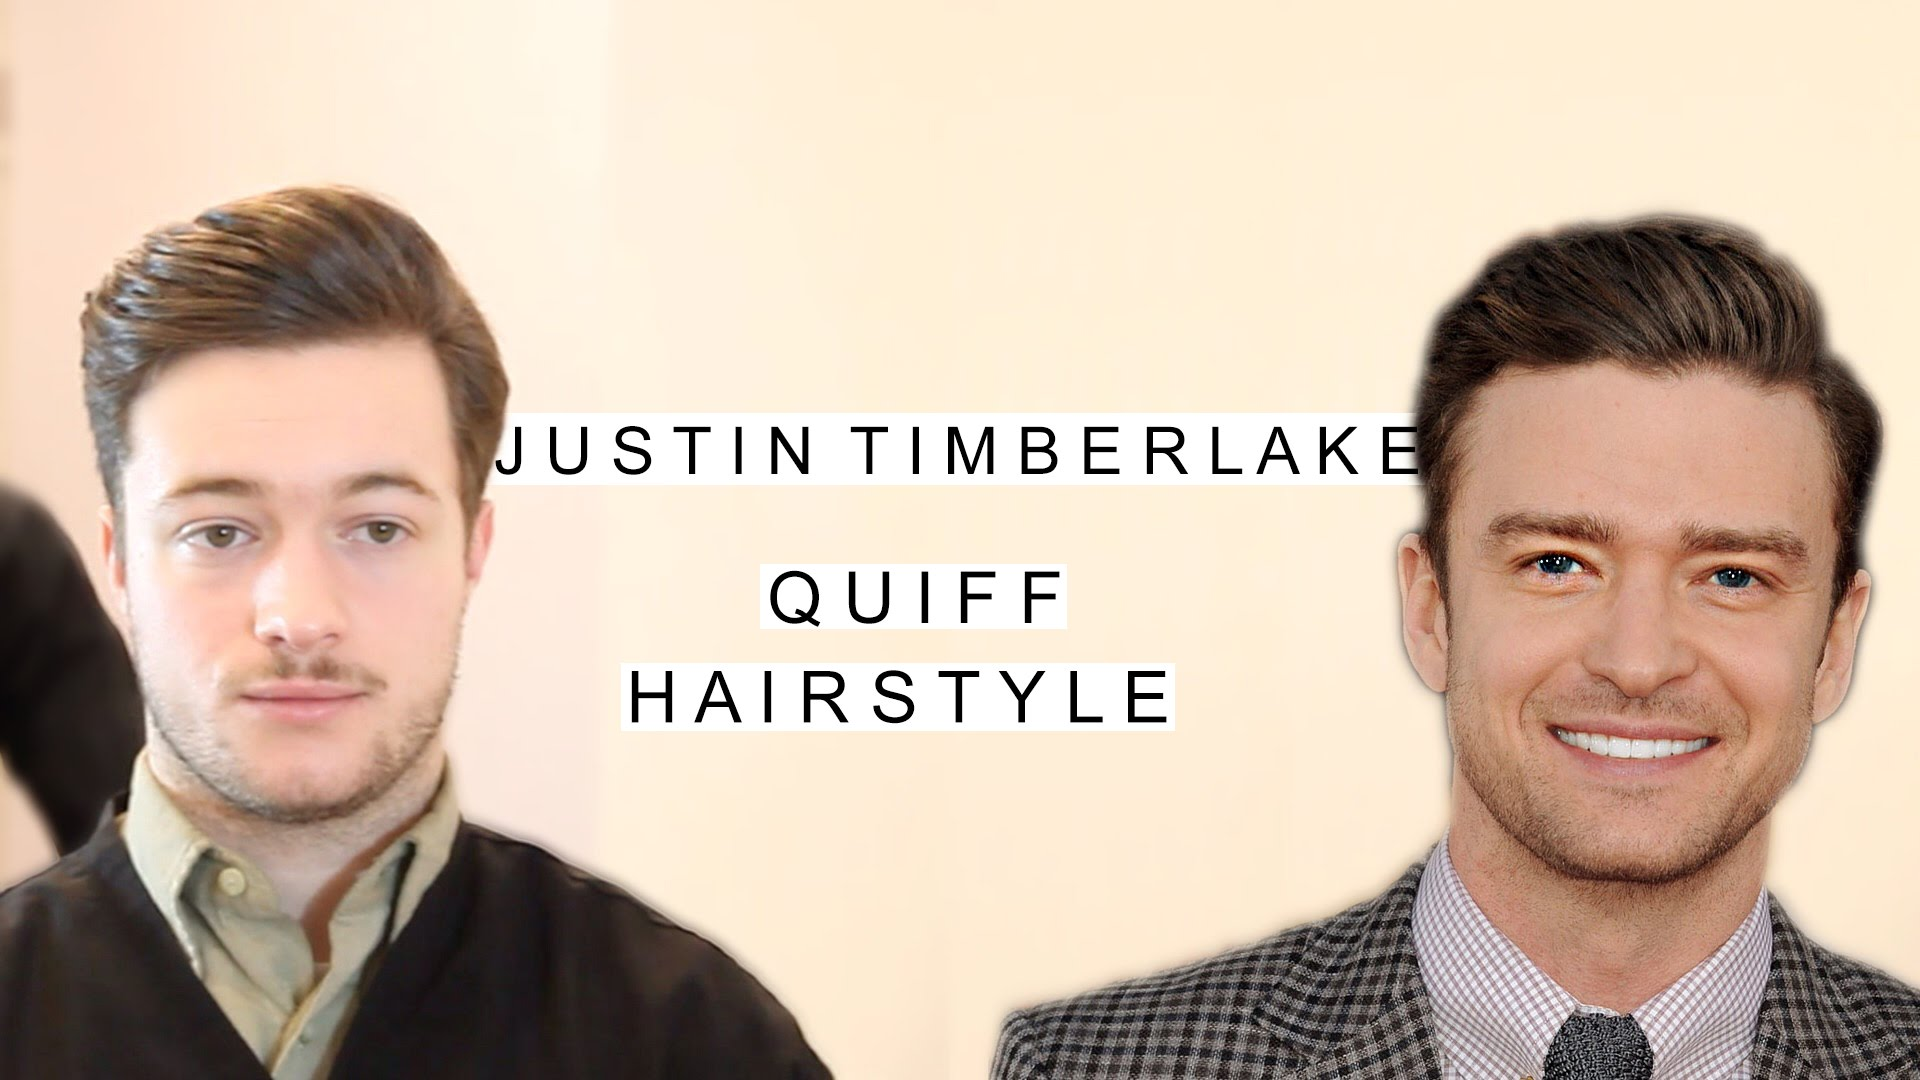 Justin-Timberlake-Quiff-Hairstyle-Business-Haircut-Classic-Mens-Hairstyles